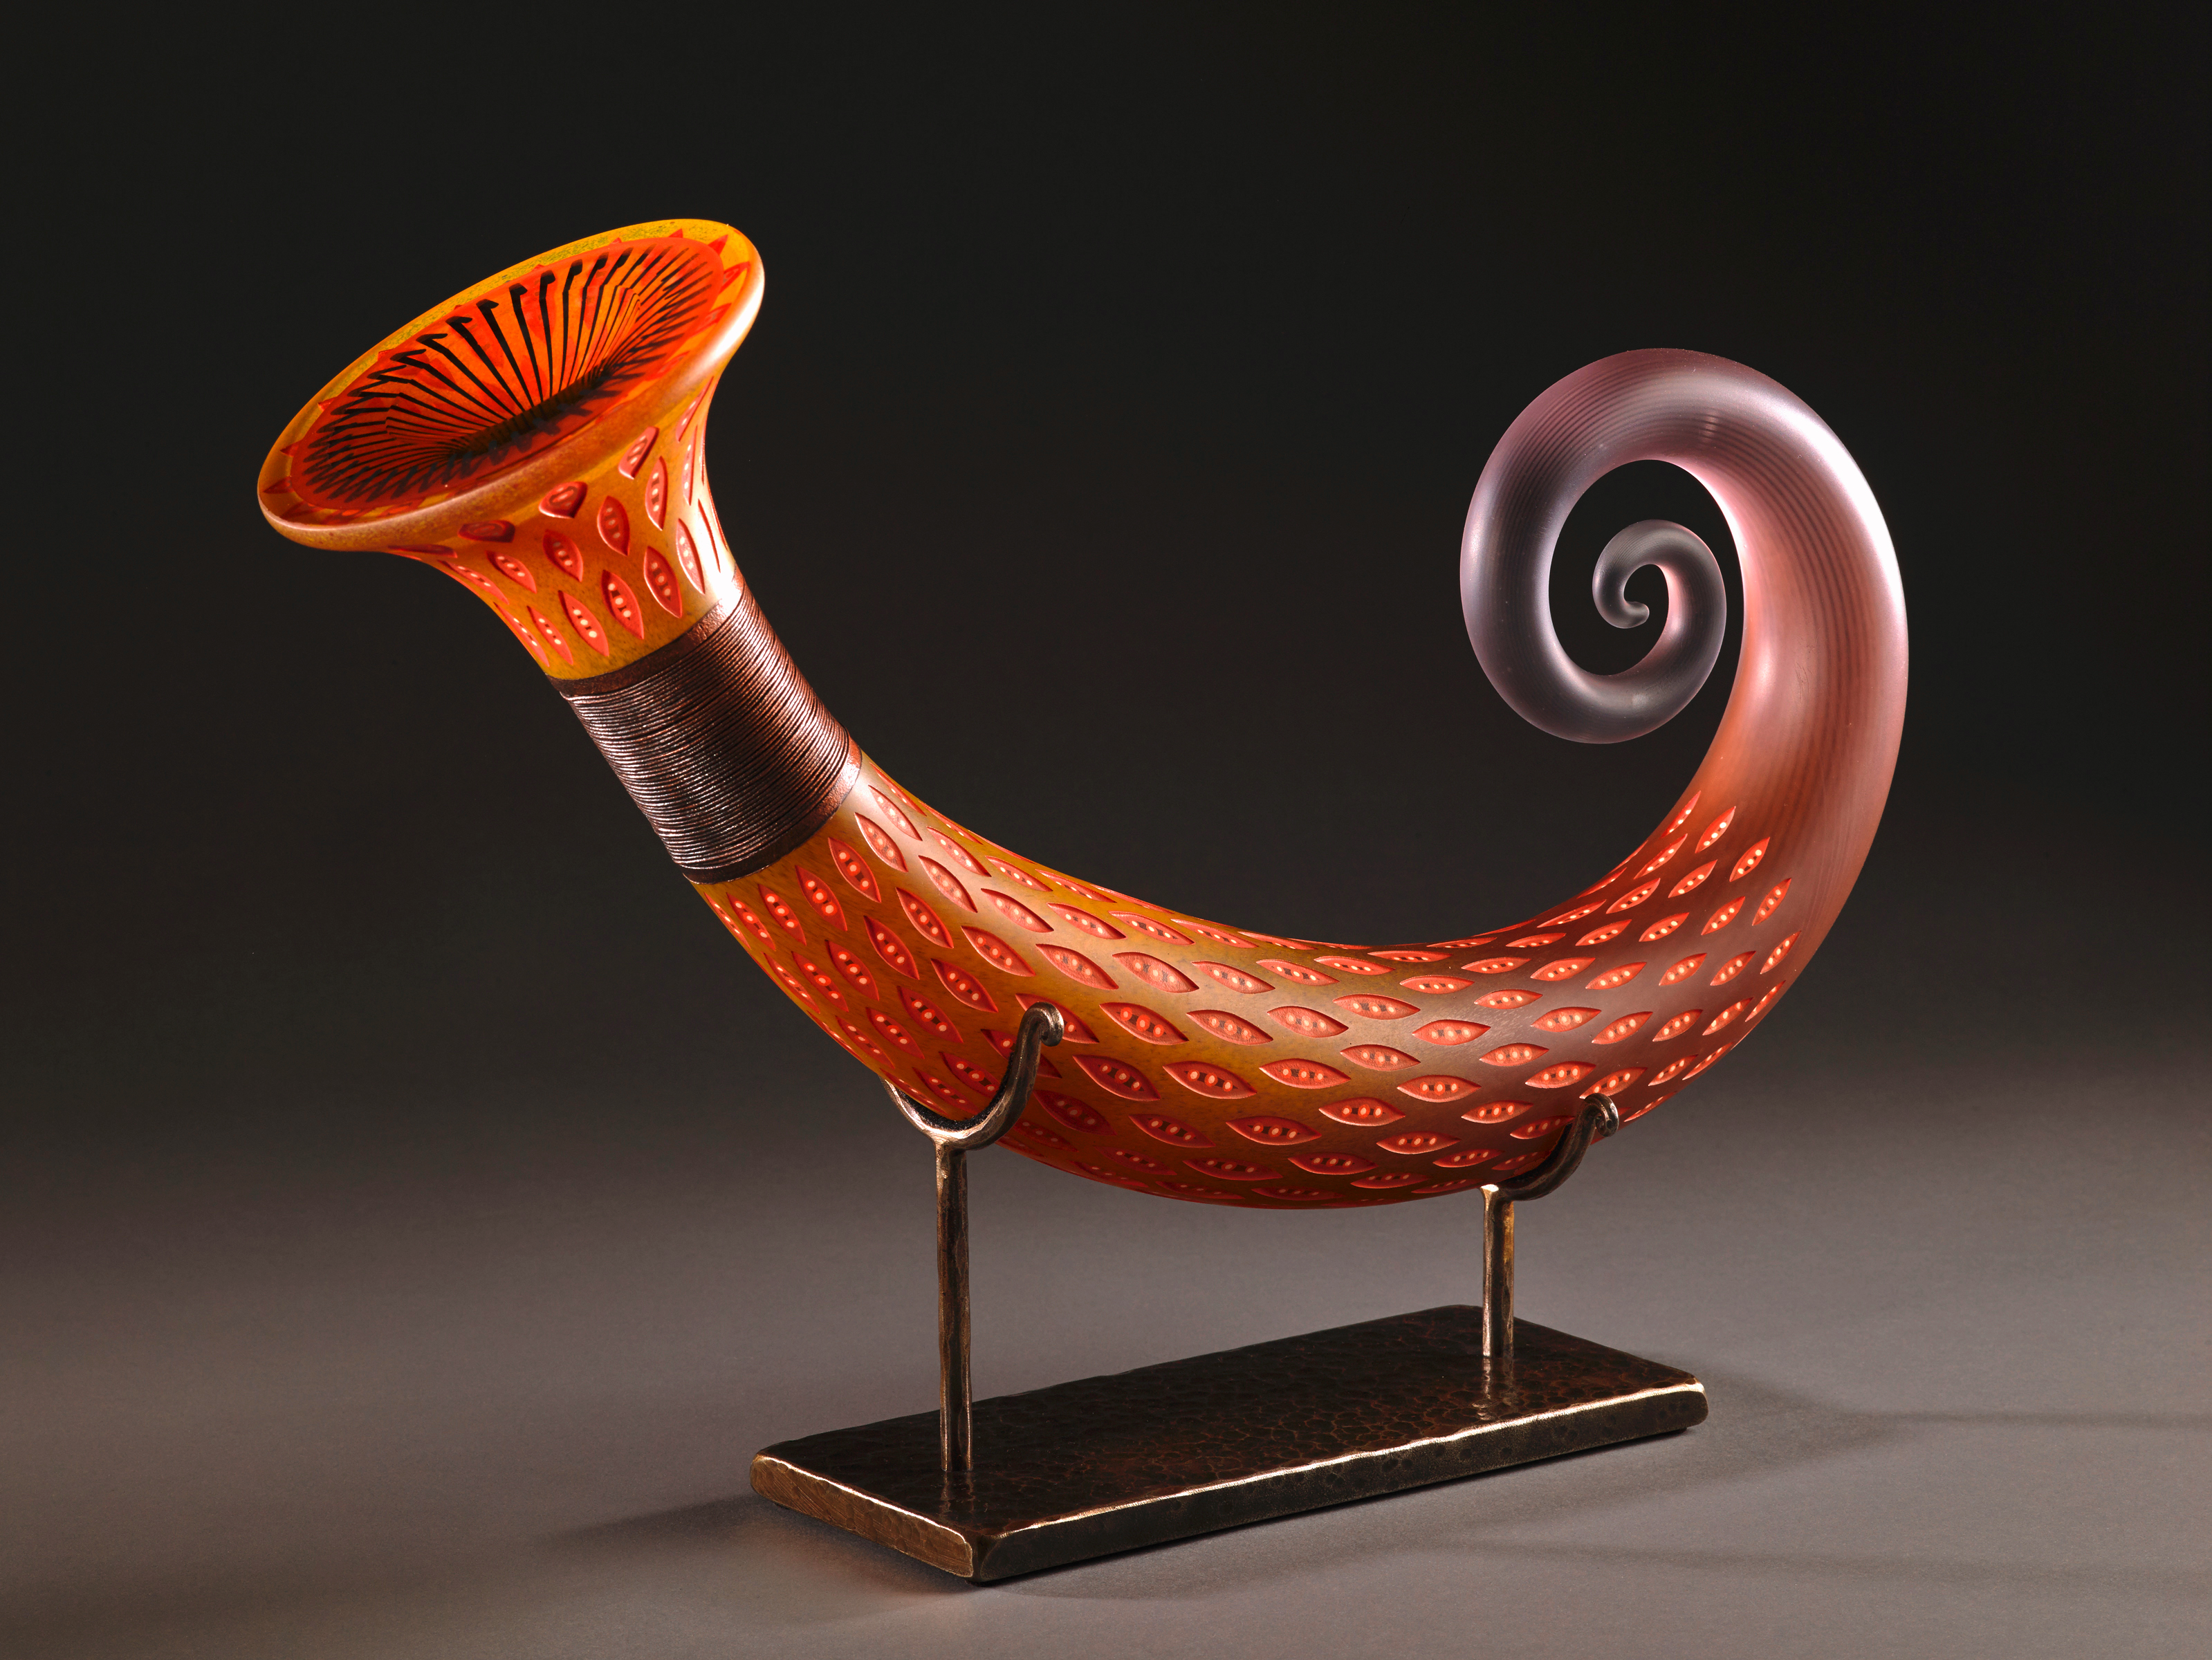 Glass sculpture by Jose Chardiet